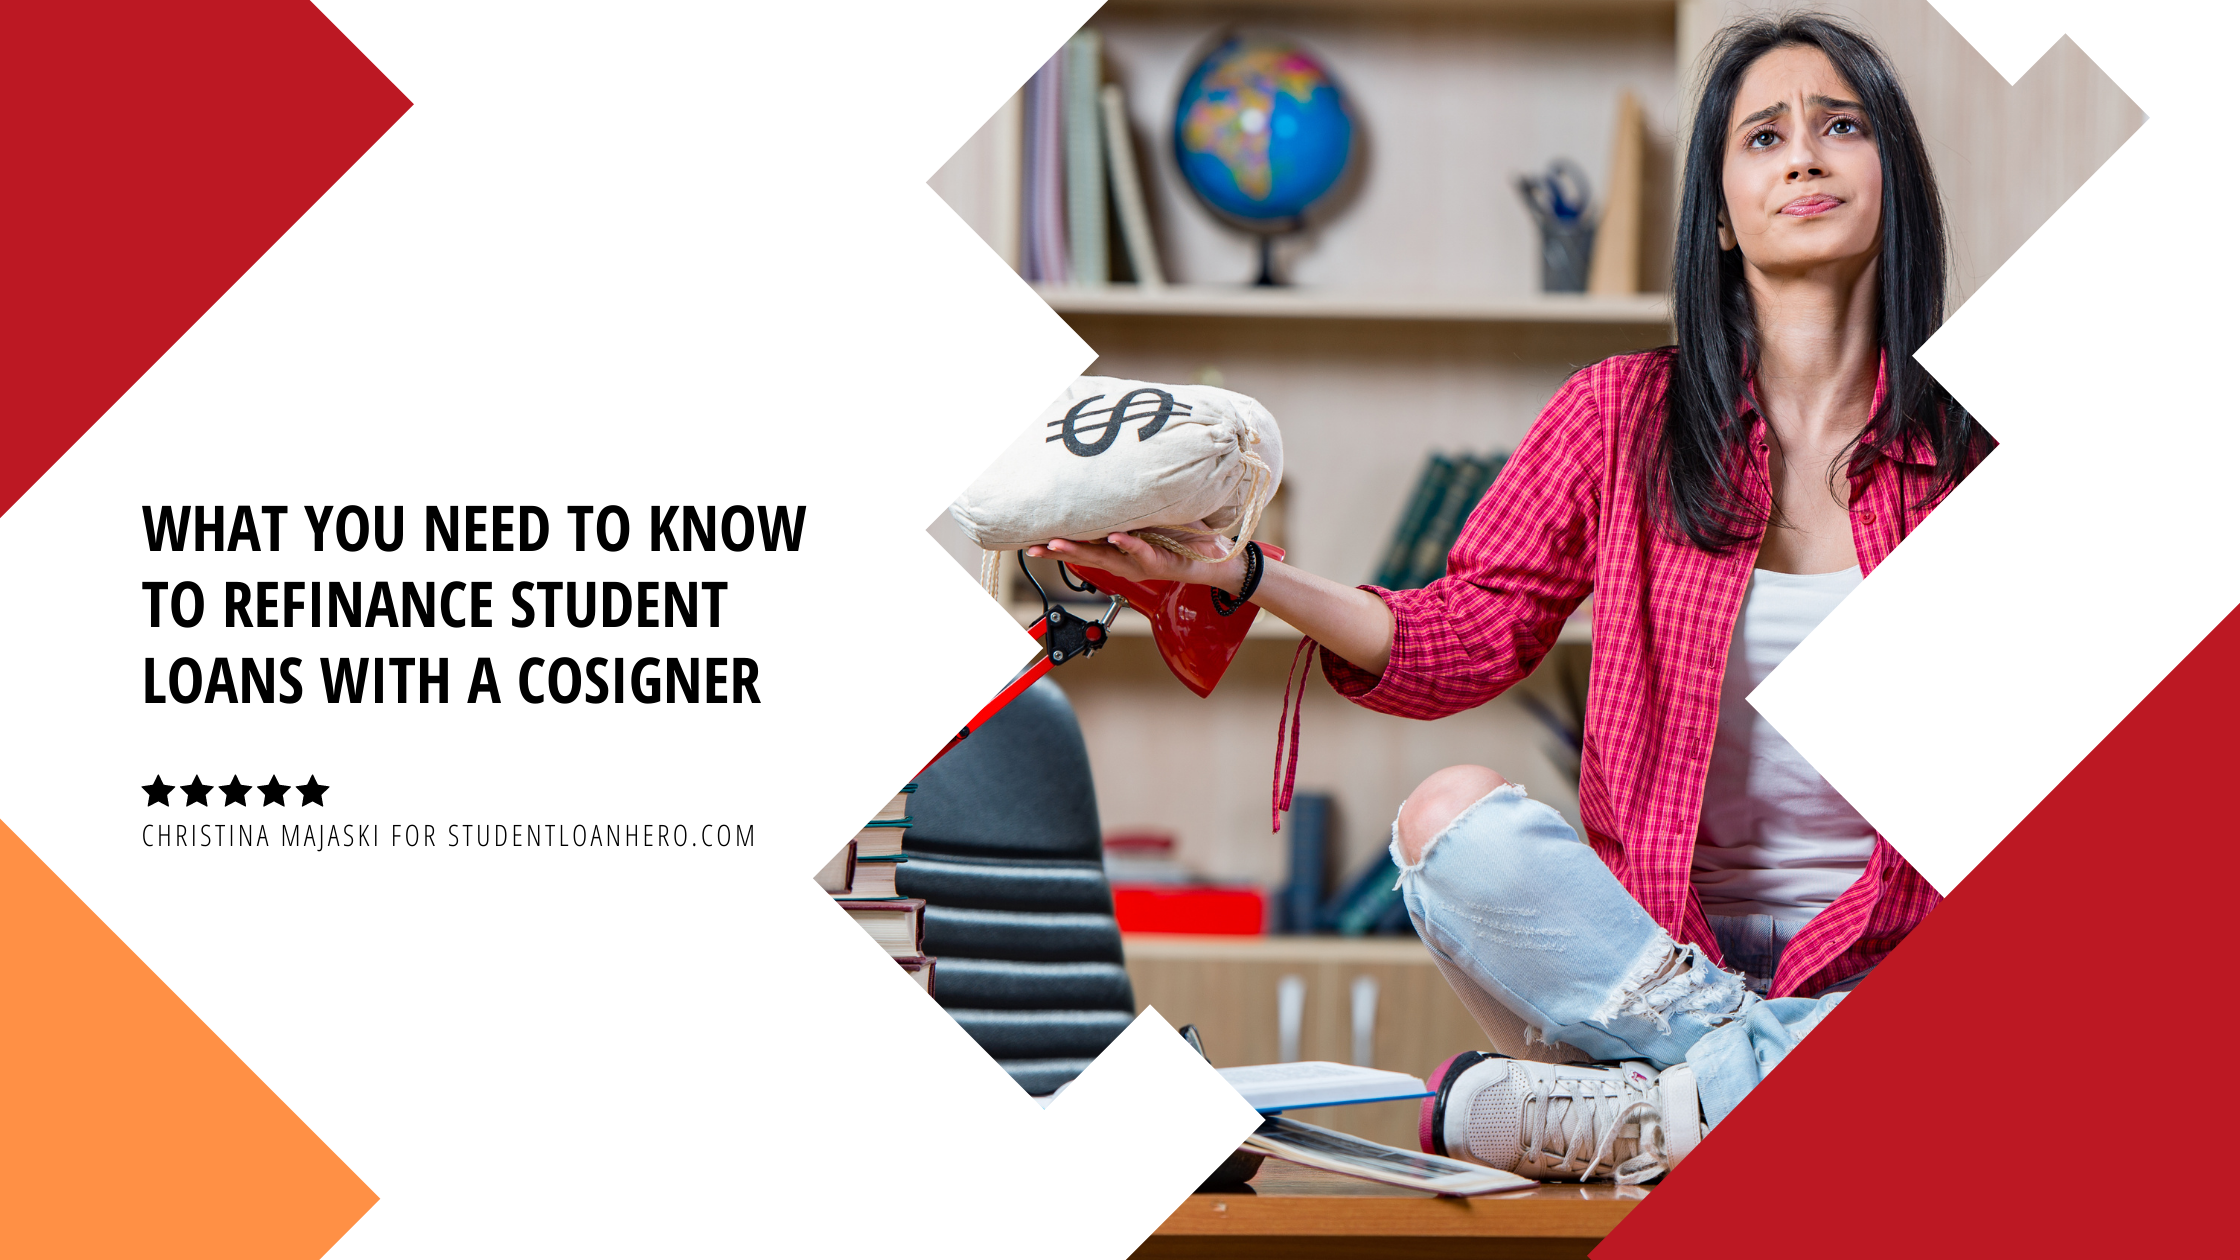 What You Need to Know to Refinance Student Loans With a Cosigner